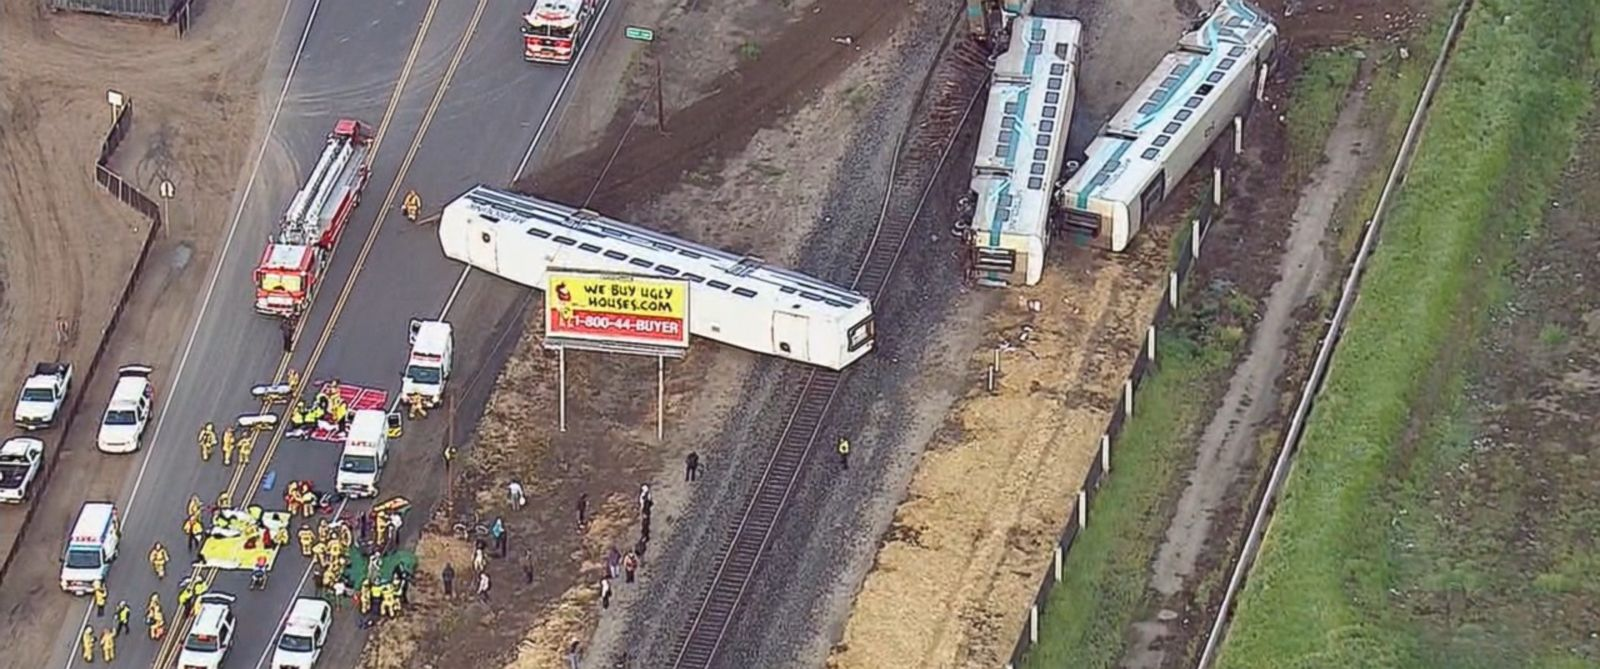 PHOTO: Southern Californias Metrolink commuter service says one of its trains struck a vehicle, causing a number of train cars to derail in Oxnard, Calif., Feb. 24, 2015.